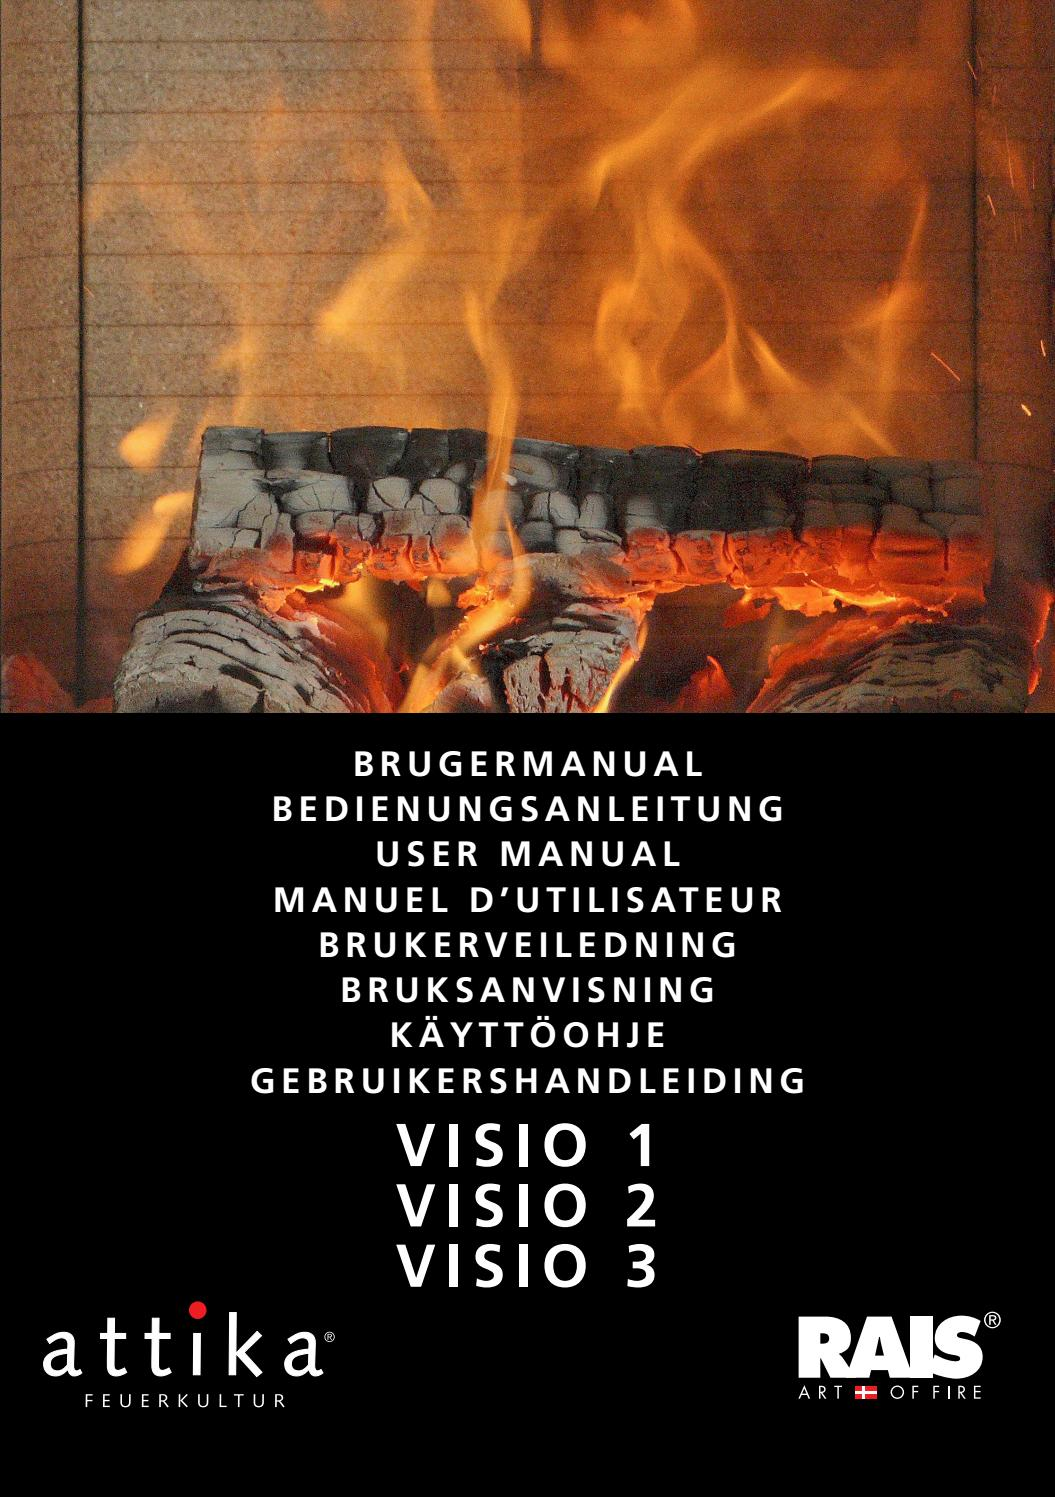 Bis 1.2 Fireplace Manual Rais Visio 1246510 Ver 10 By Rais A S Issuu